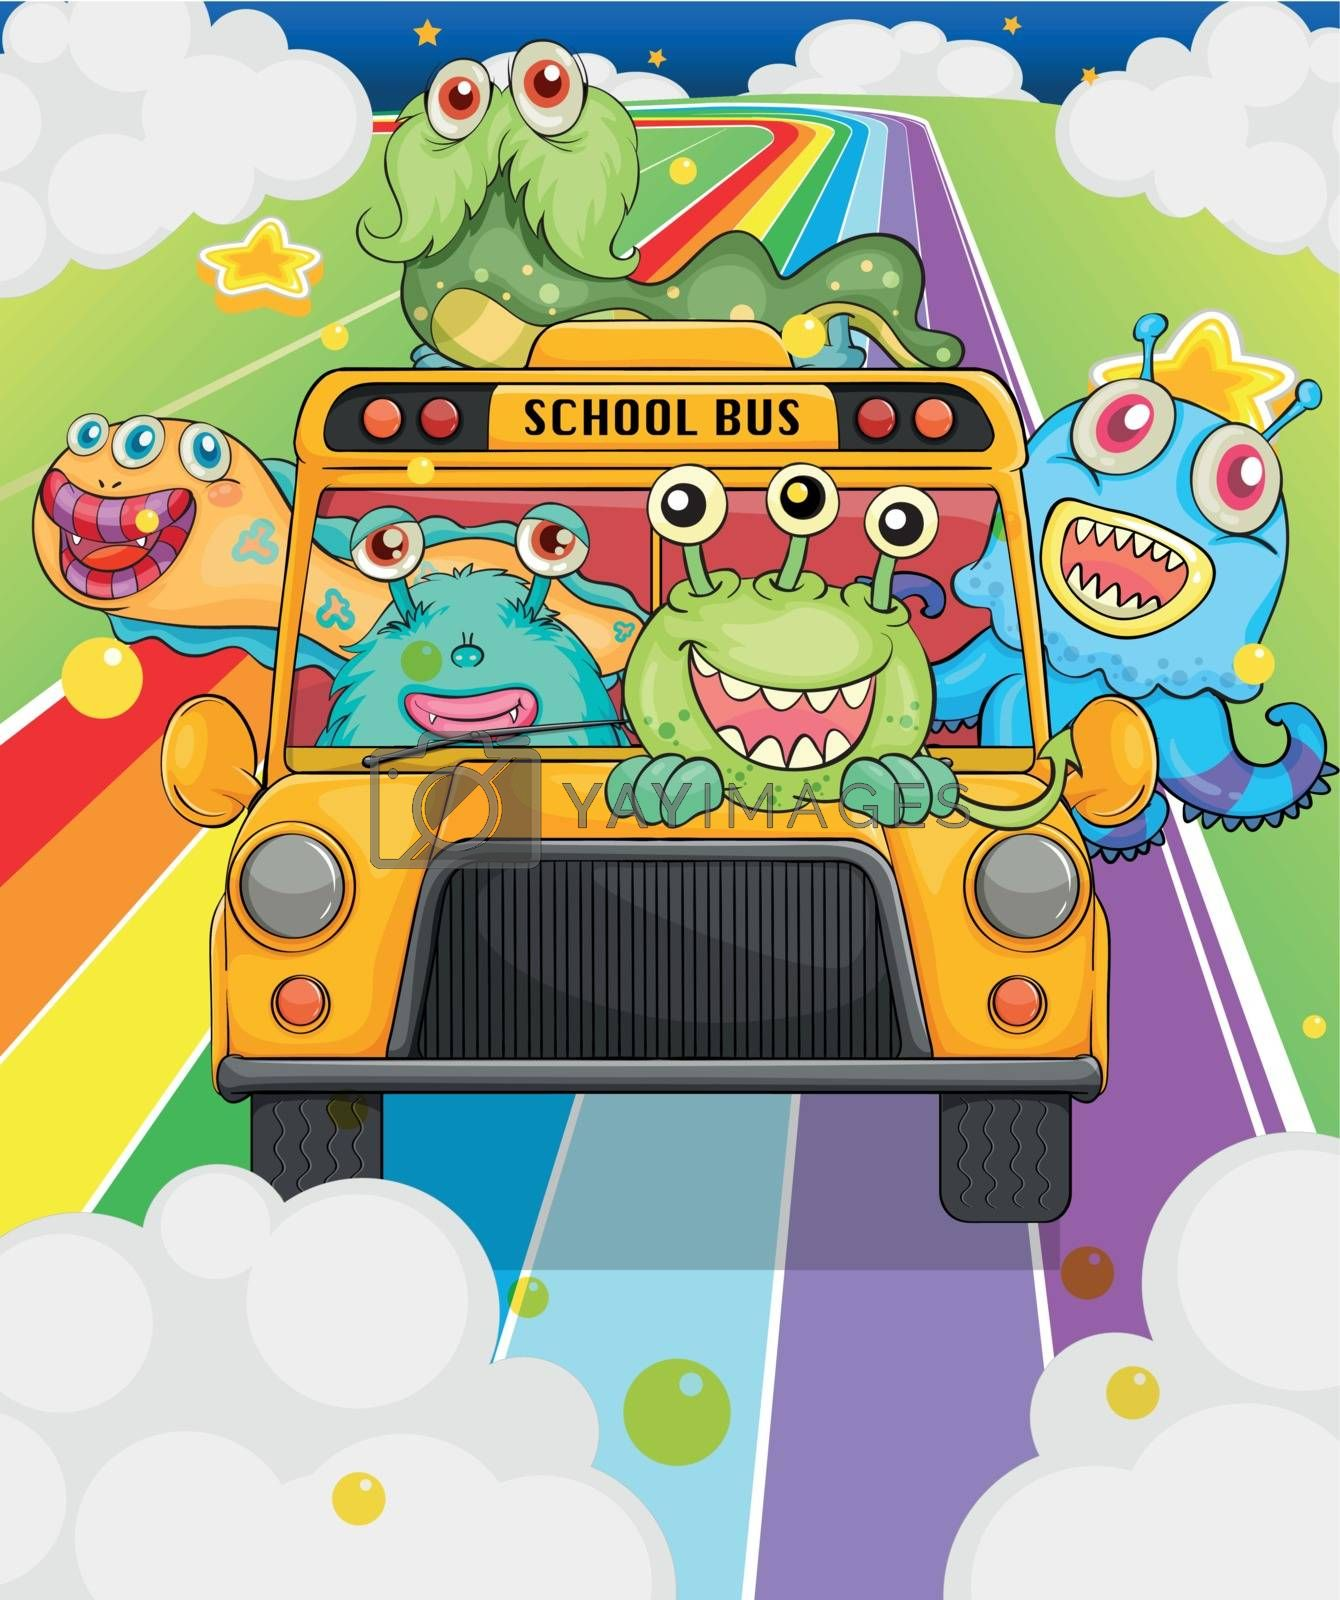 Illustration of a school bus with monsters